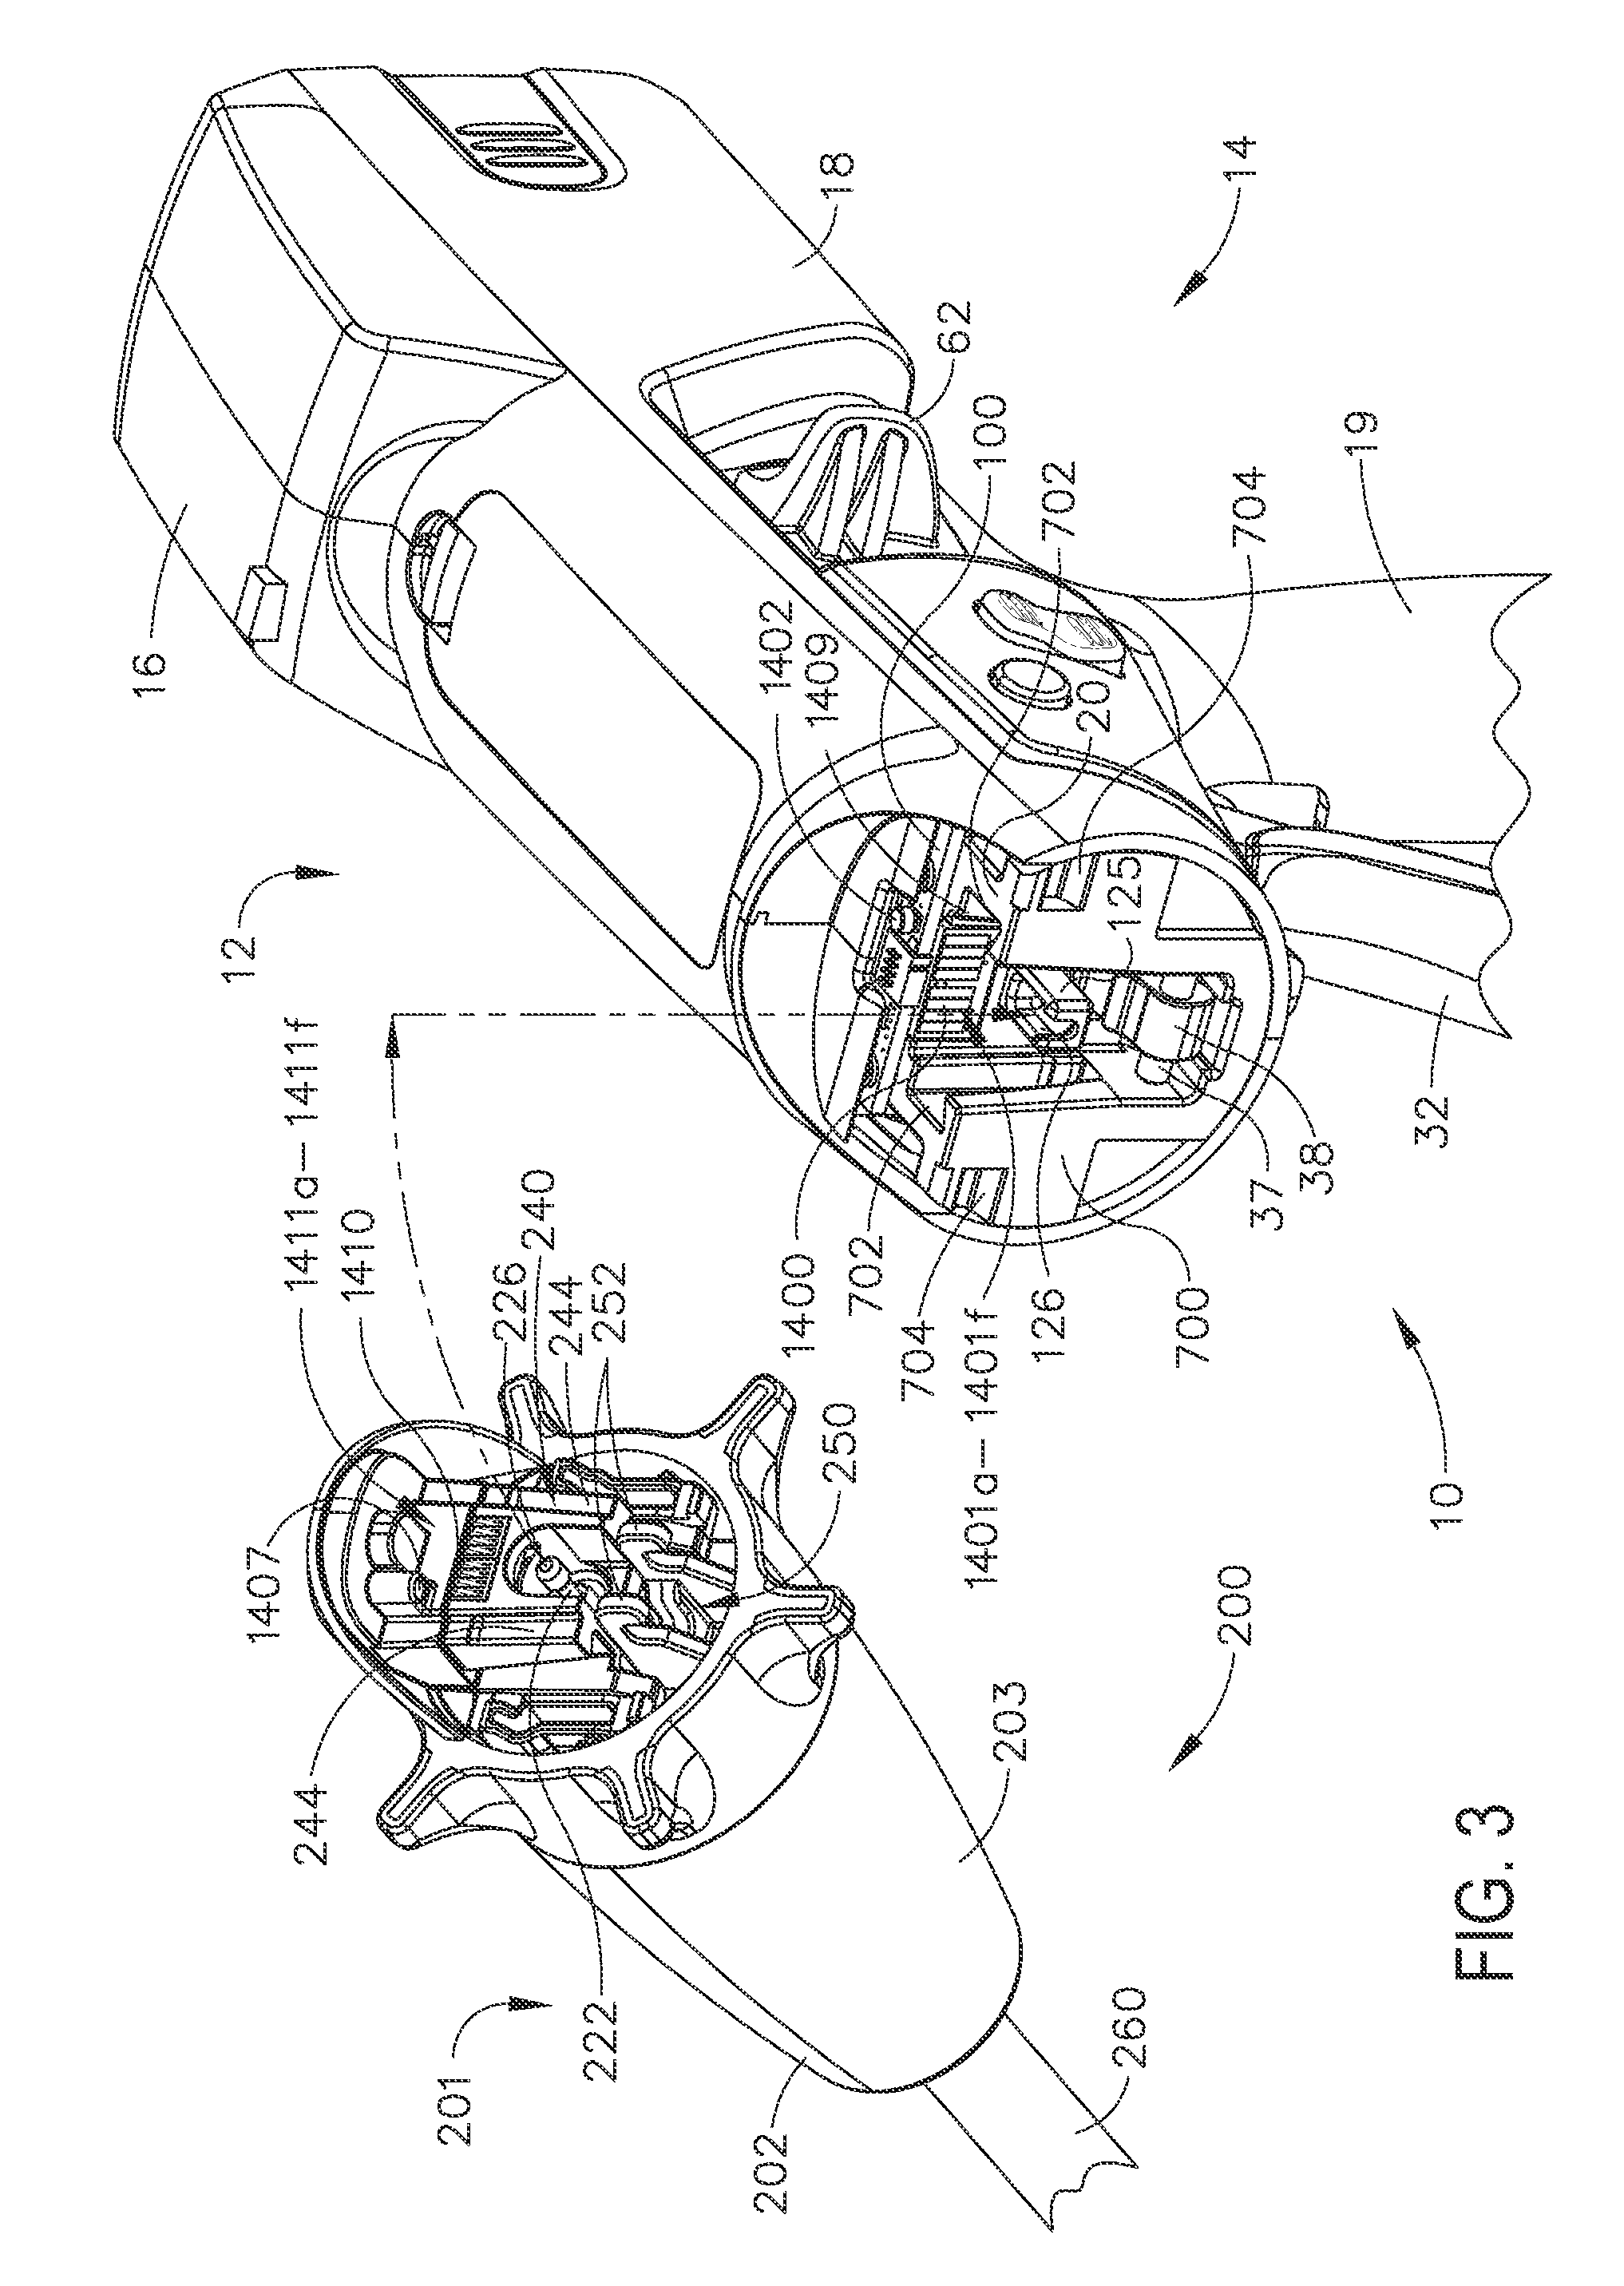 Us9895148b2 Monitoring Speed Control And Precision Incrementing Of 12 Volt Latching Relay Diagram Likewise Starter Kill Motor For Powered Surgical Instruments Google Patents